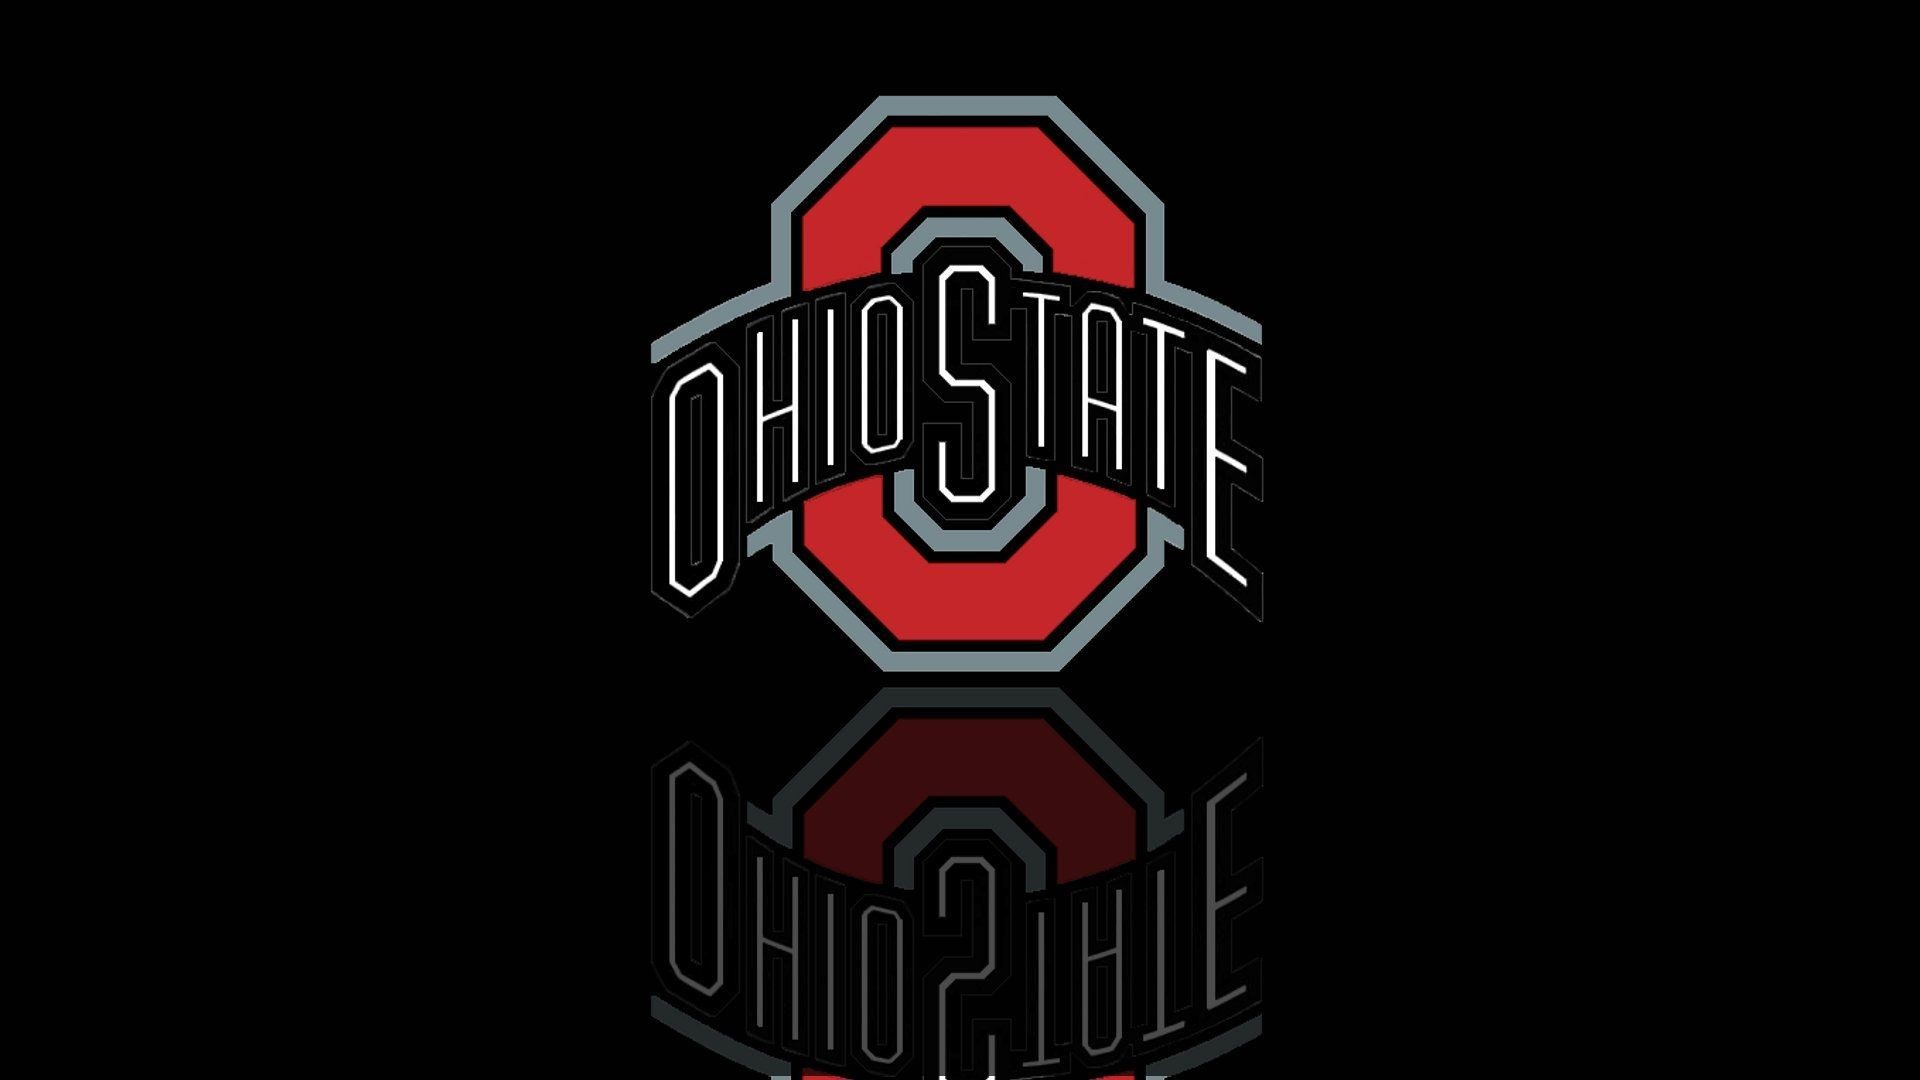 1920x1080 Ohio State Buckeyes Football Wallpapers Wallpaper